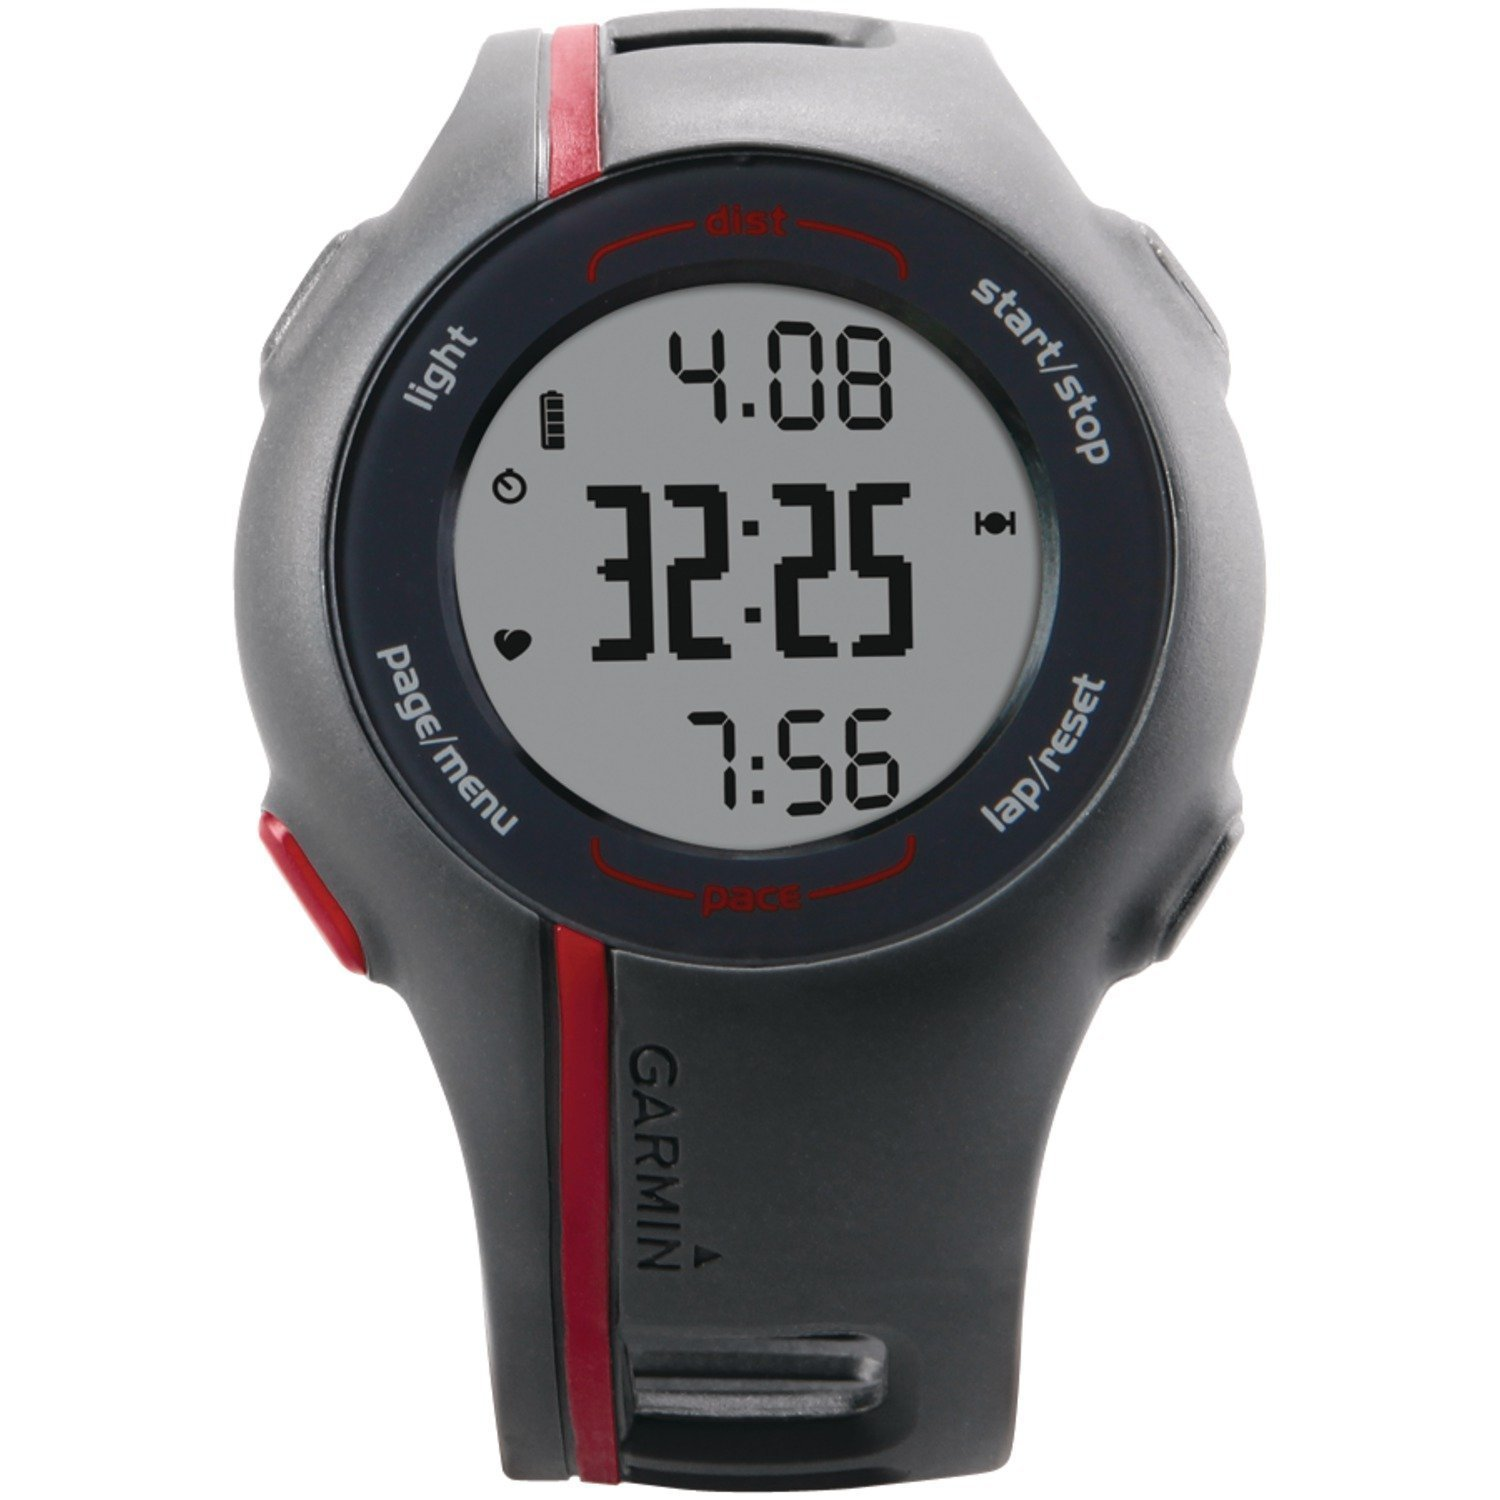 Garmin Forerunner 110 GPS-Enabled Sport Watch with Heart Rate Monitor - Red (Certified Refurbished)